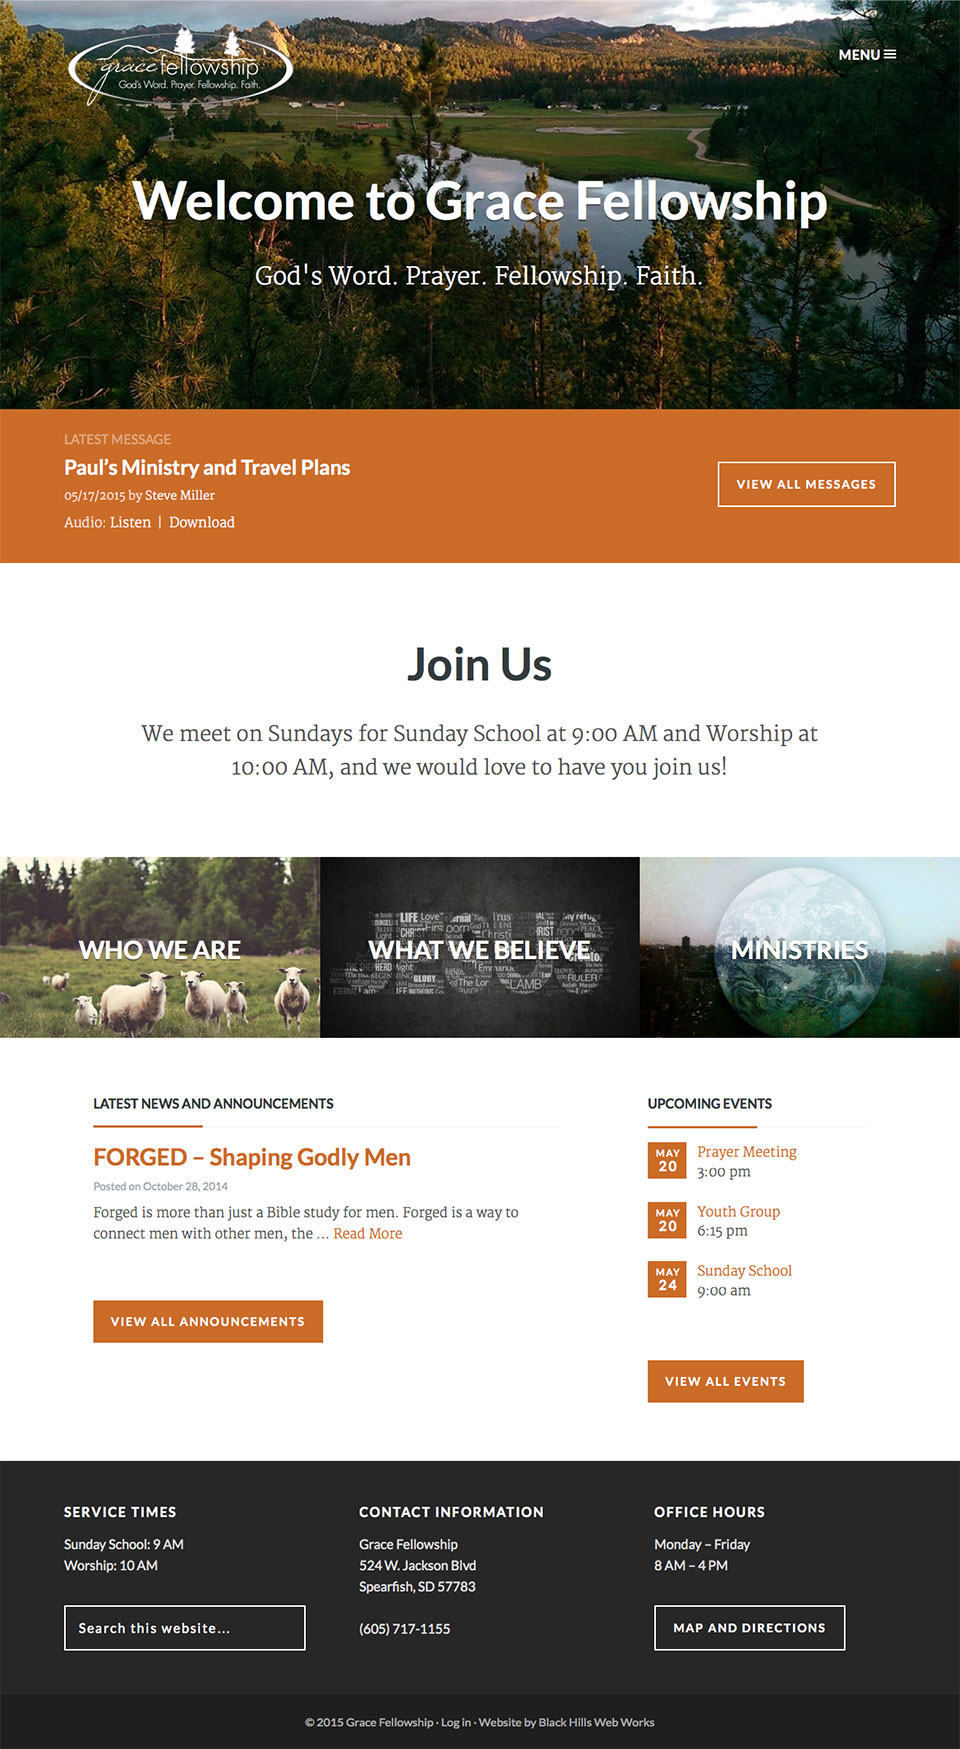 Grace Fellowship Home page